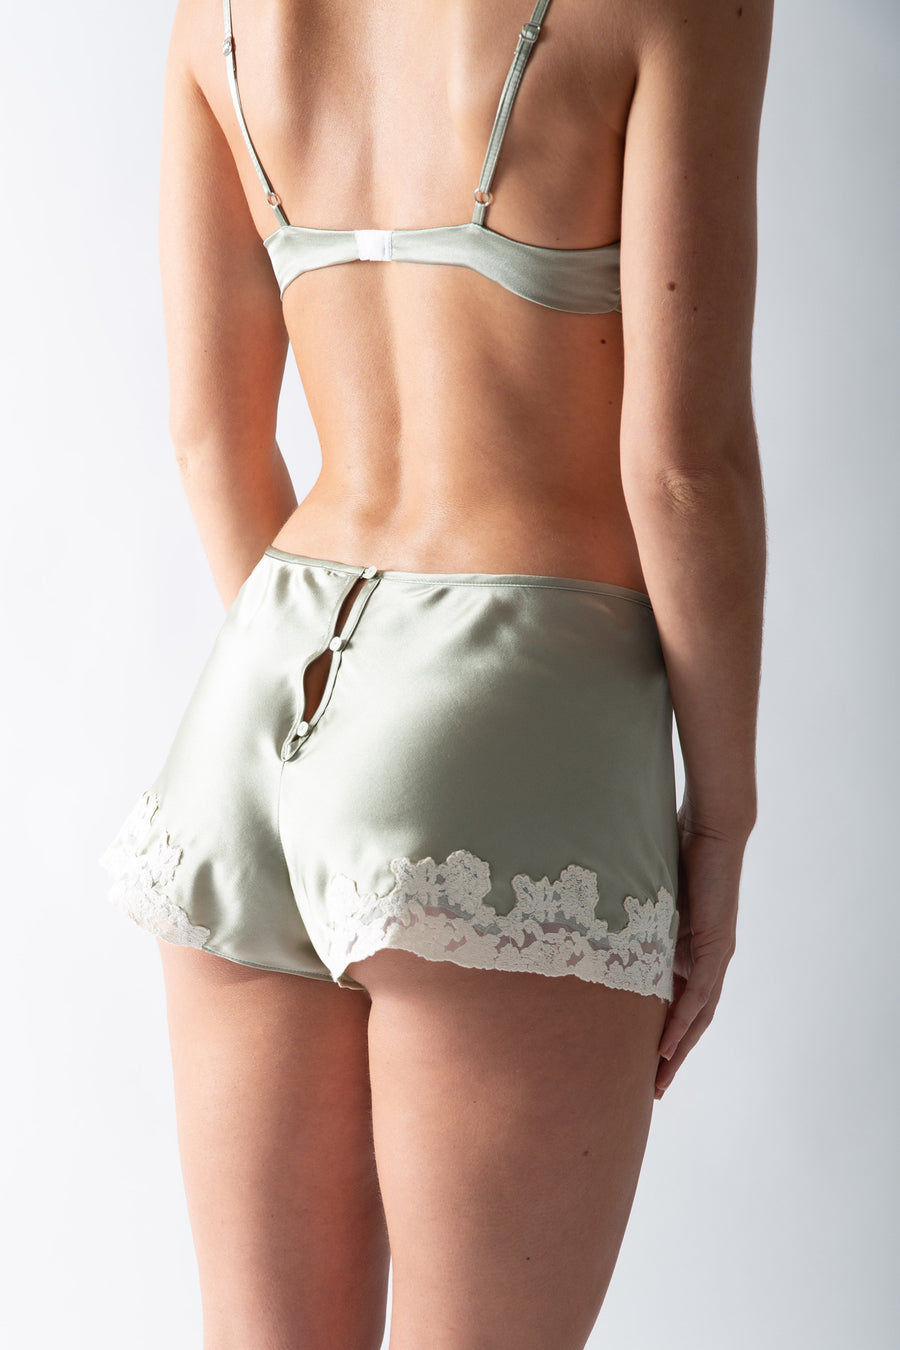 This is a back photo of a woman wearing a sage colored silk set of mini shorts and bralette with lace trim. The back of the shorts have 3 button closure up the center back.